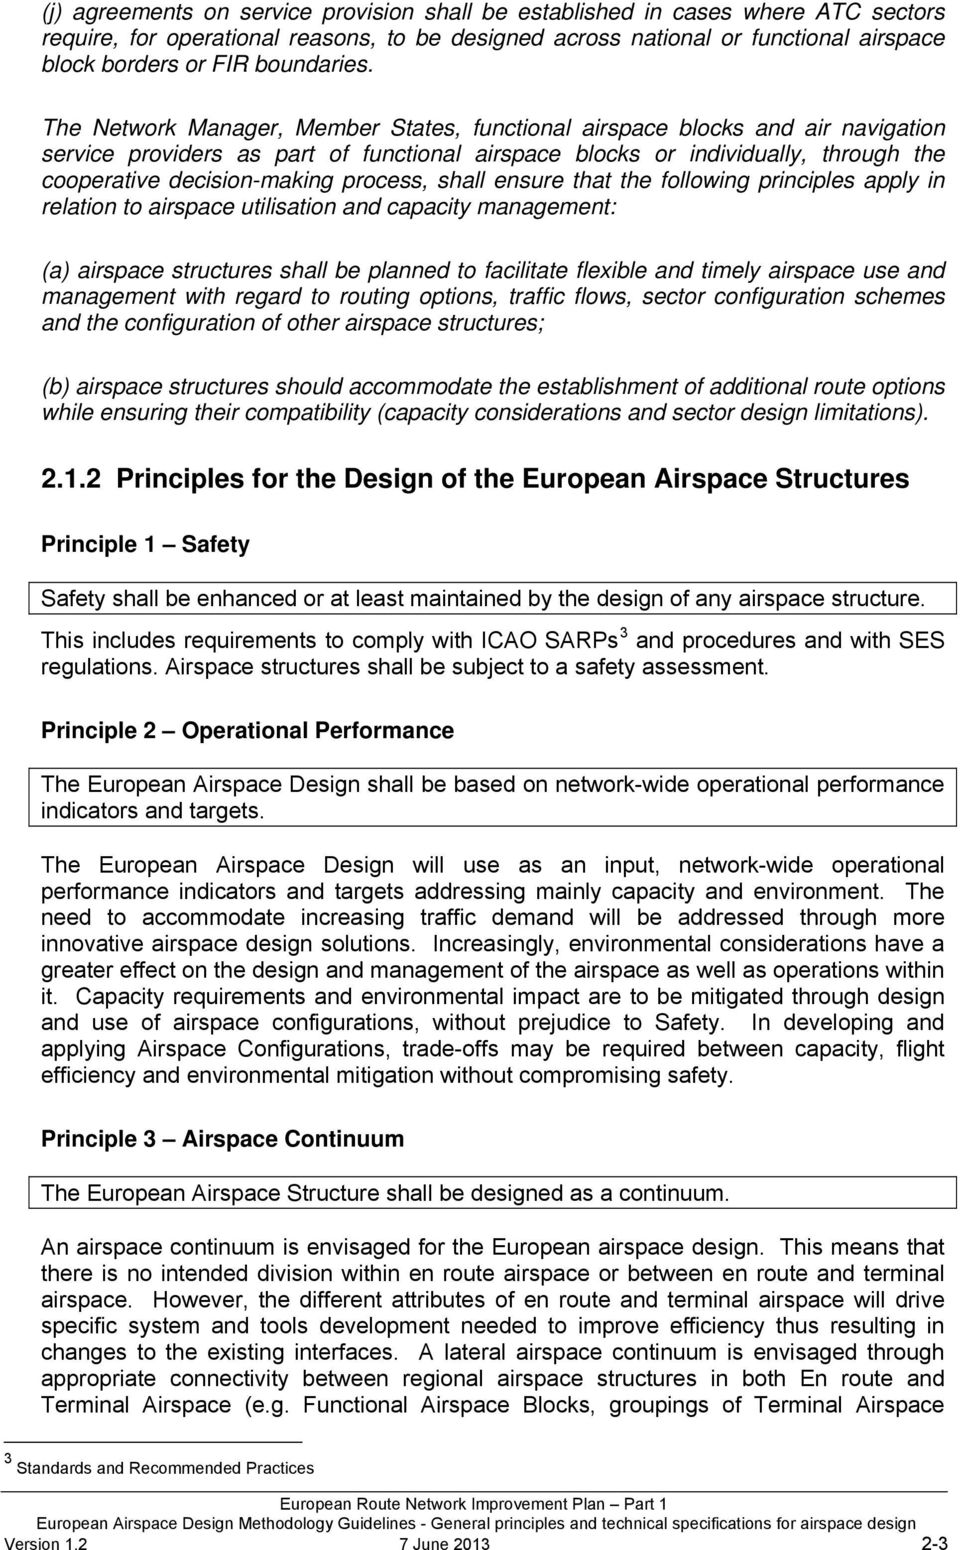 The Network Manager, Member States, functional airspace blocks and air navigation service providers as part of functional airspace blocks or individually, through the cooperative decision-making